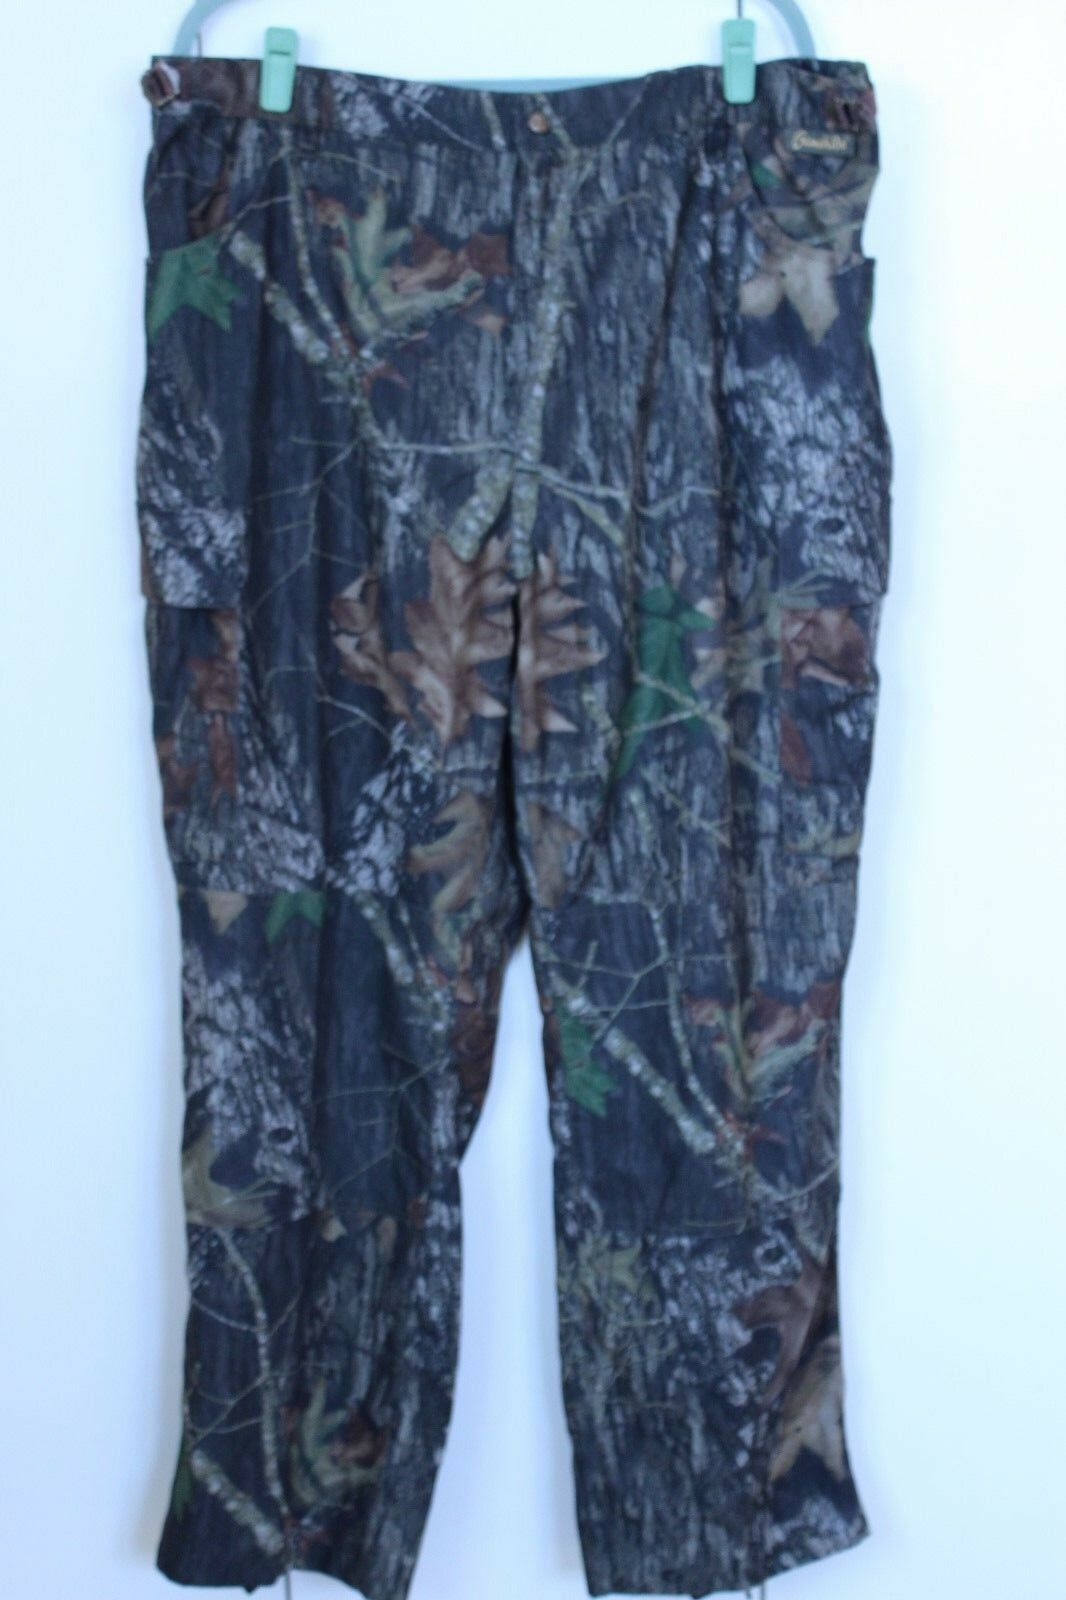 Men's Gamehide Camo Hunting Pants size 3X Style 312